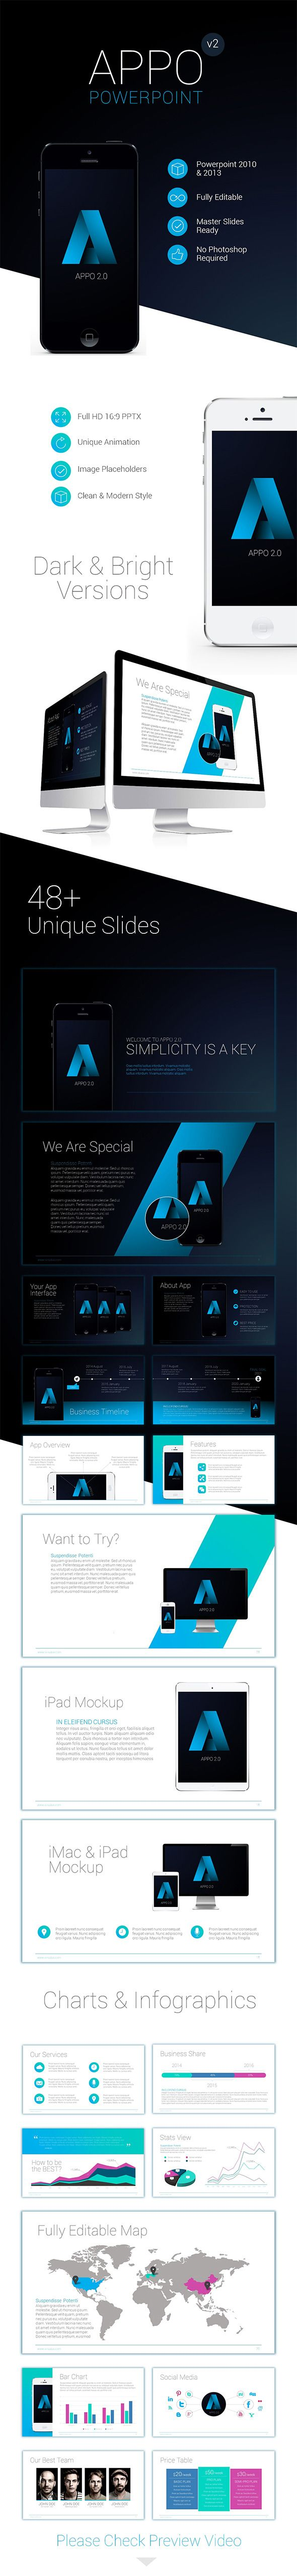 Premium App Powerpoint Template PowerPoint Template / Theme / Presentation / Slides / Background / Power Point #powerpoint #template #theme